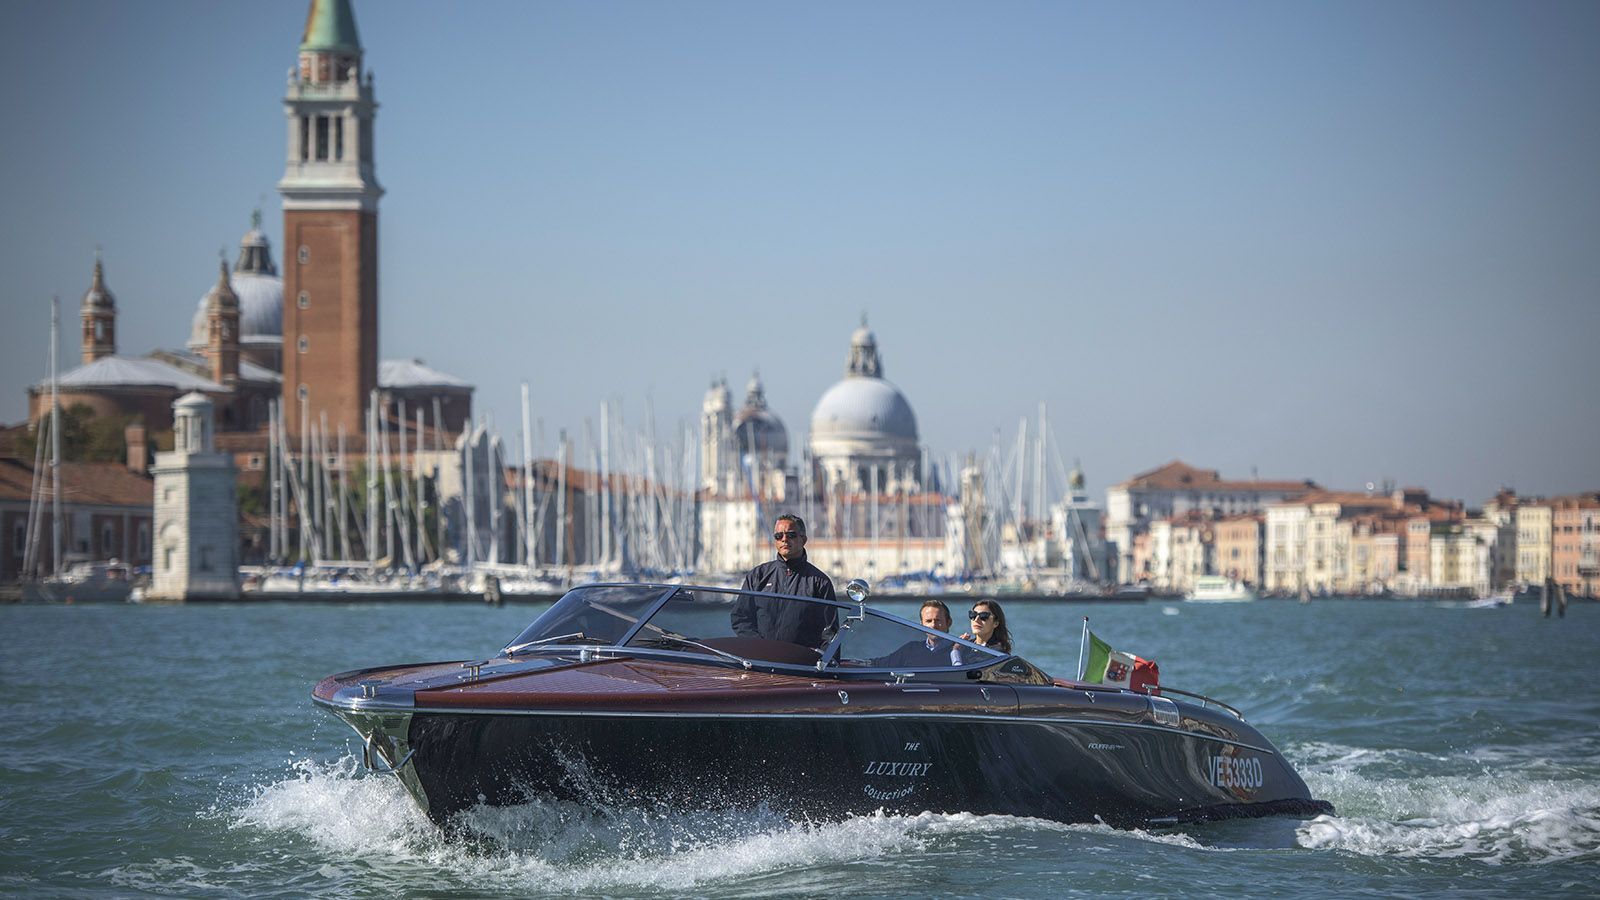 Riva Yacht Experience at the Venetian Lagoon